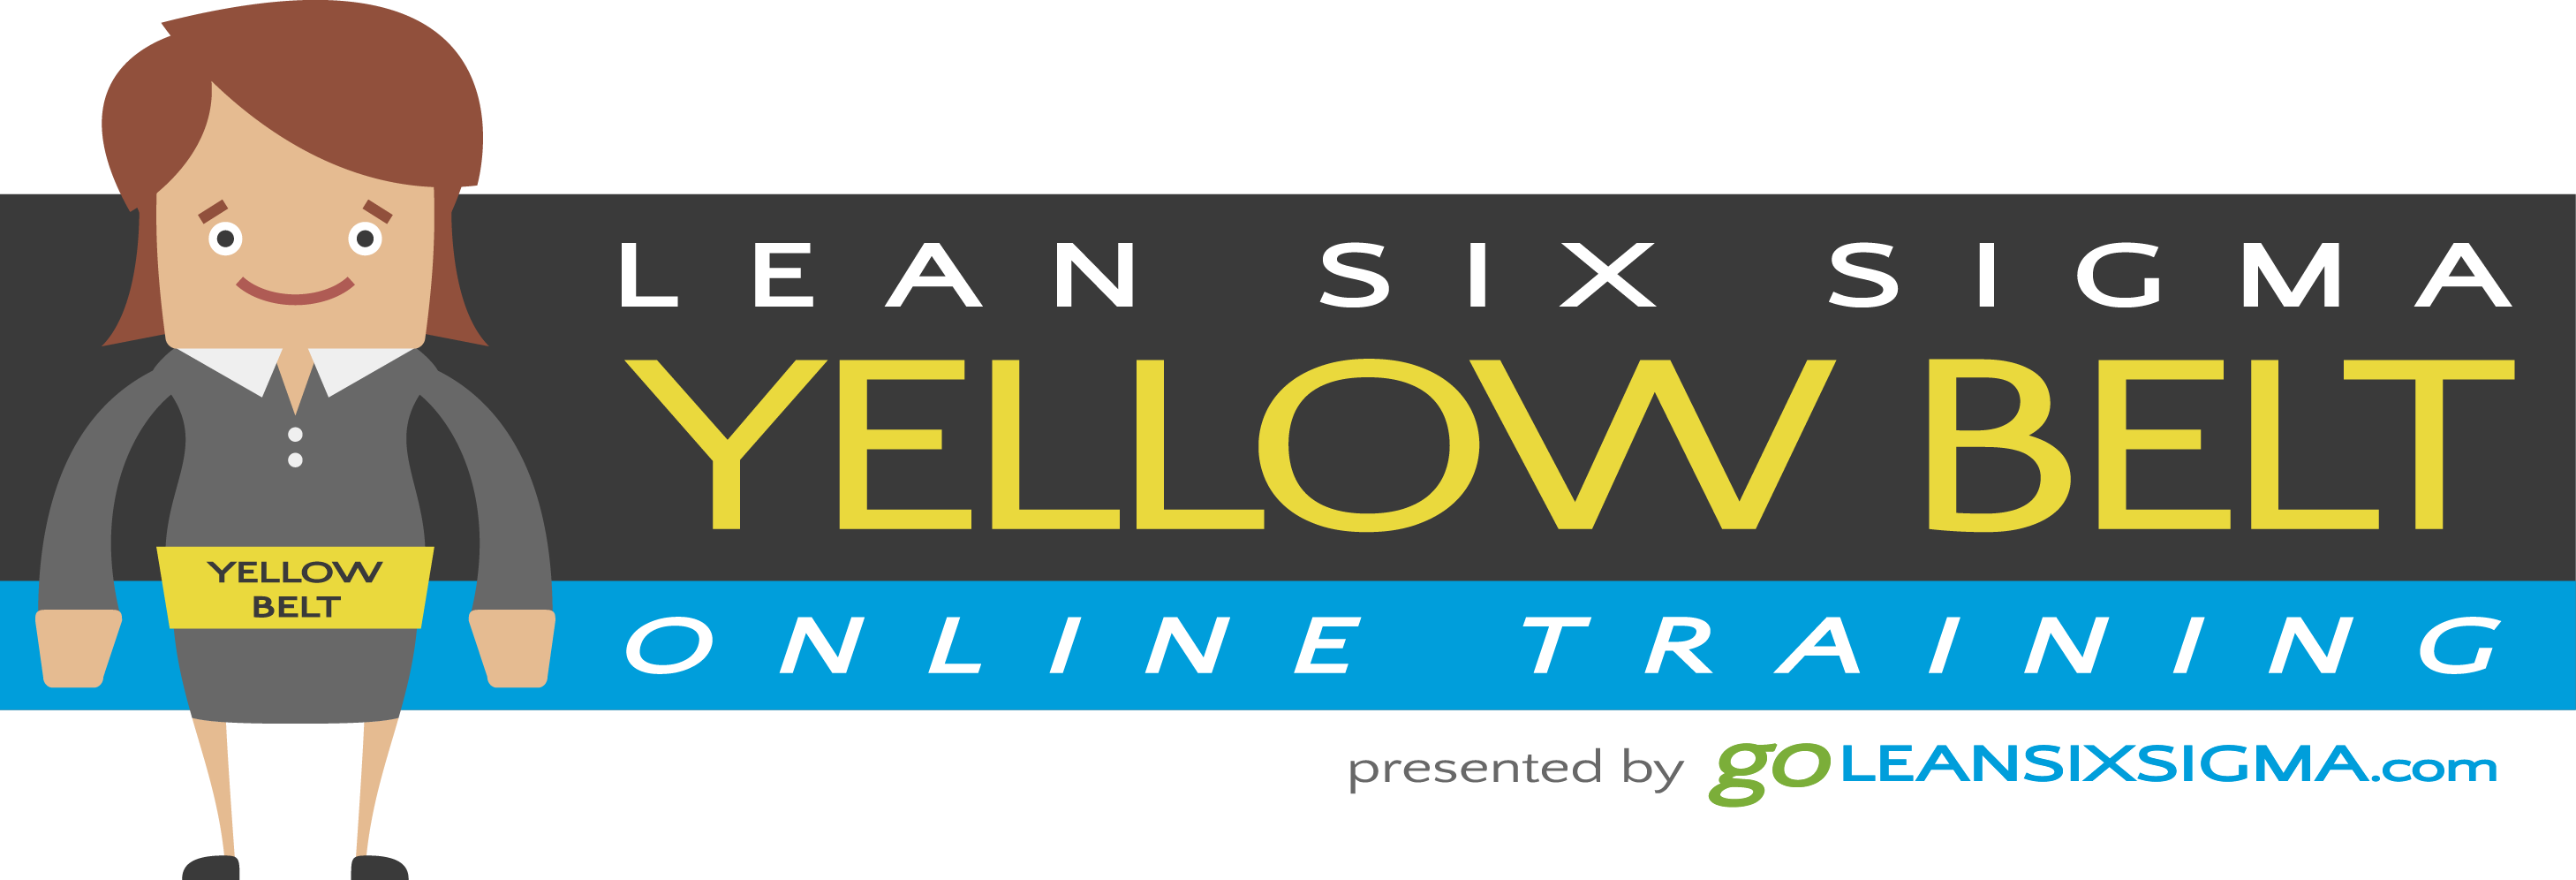 Free lean six sigma training yellow belt from goleansixsigma free lean six sigma training yellow belt from goleansixsigma xflitez Gallery